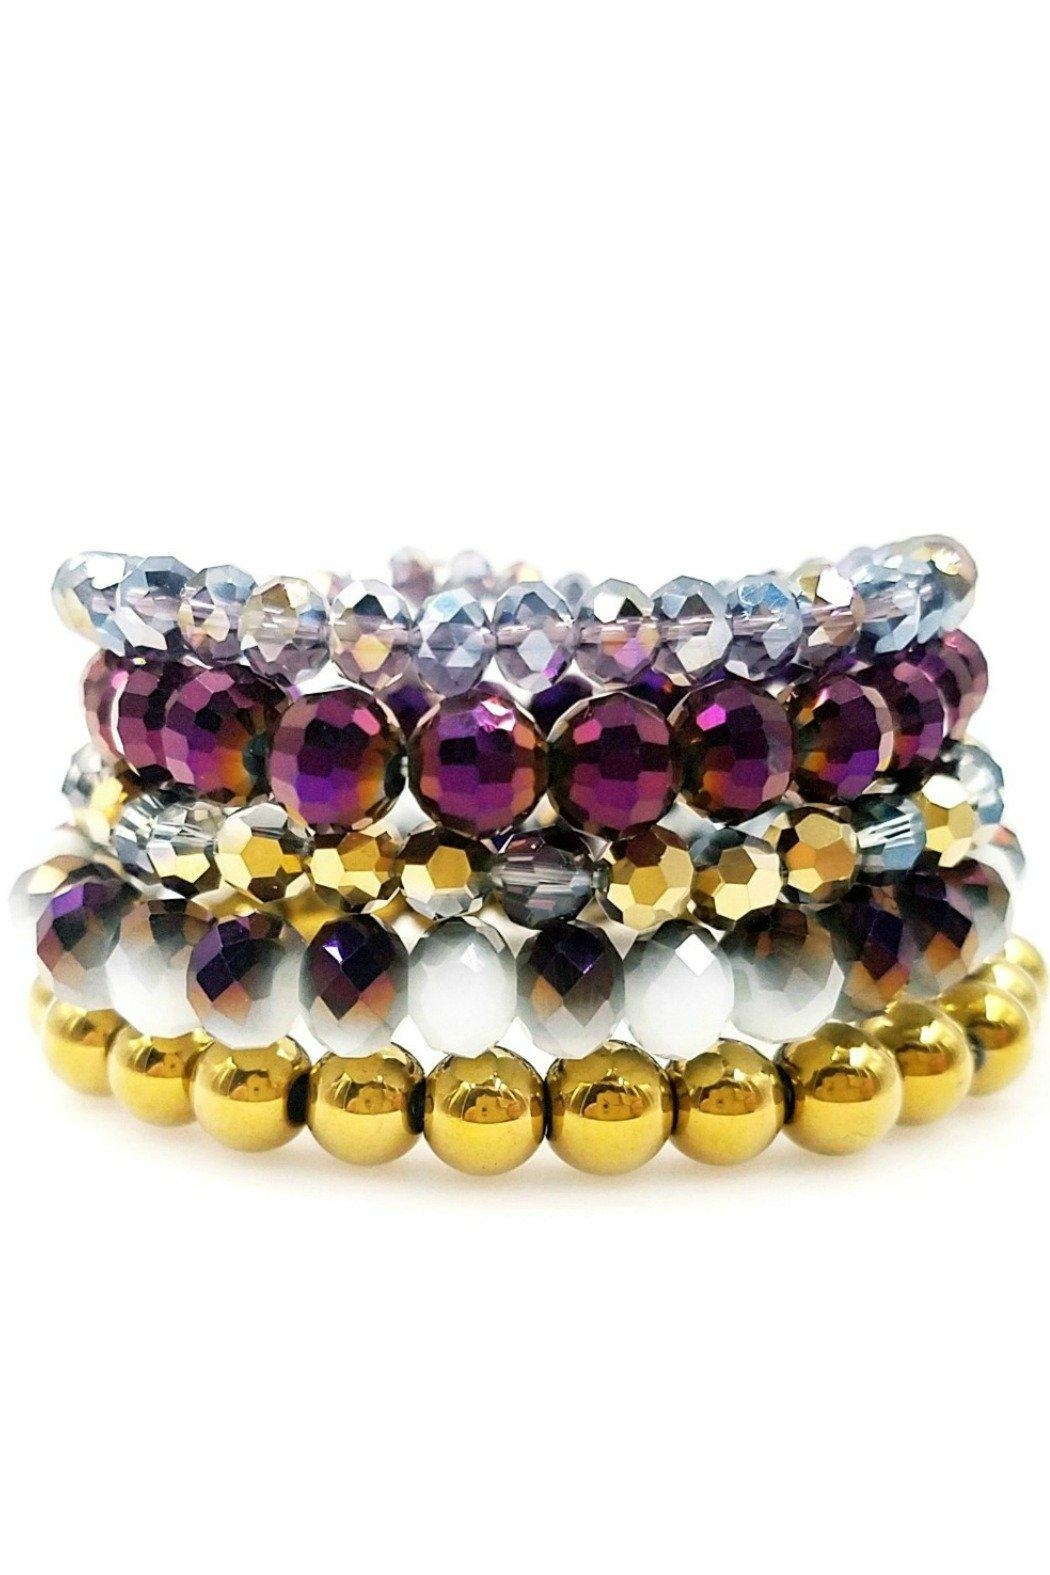 2ed88cef8d352 Izzie's Boutique Sugar Stack Bracelets` from Kentucky by Izzie's ...